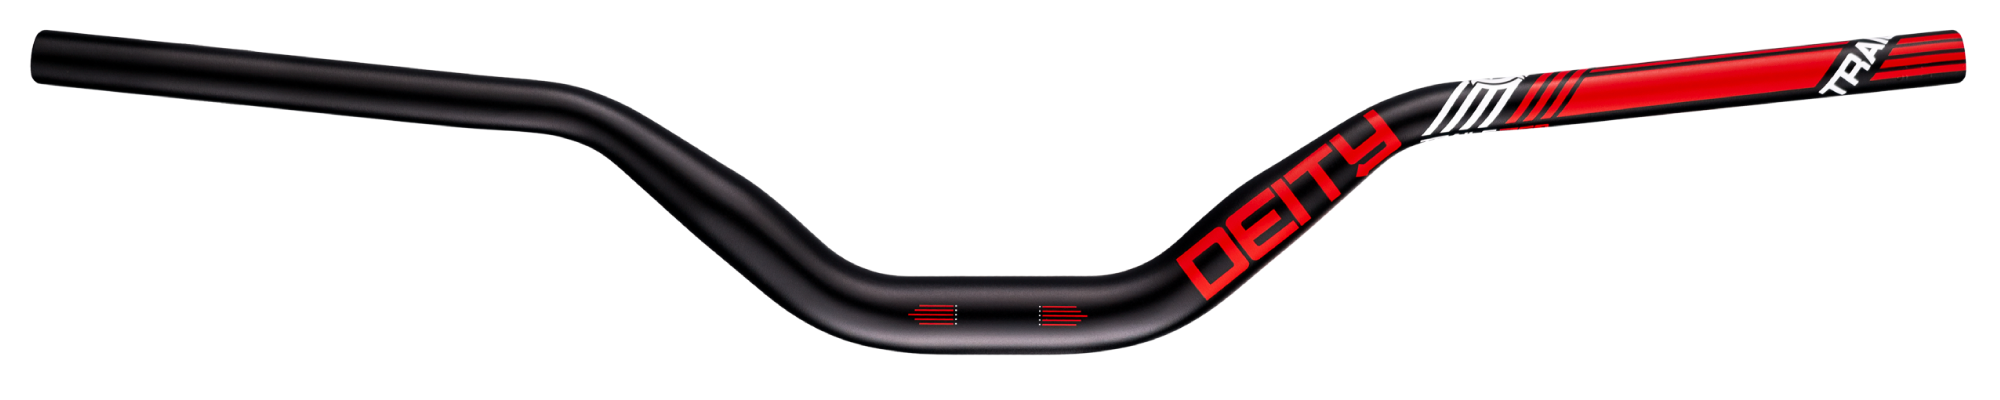 DEITY HIGHSIDE 760 HANDLEBAR